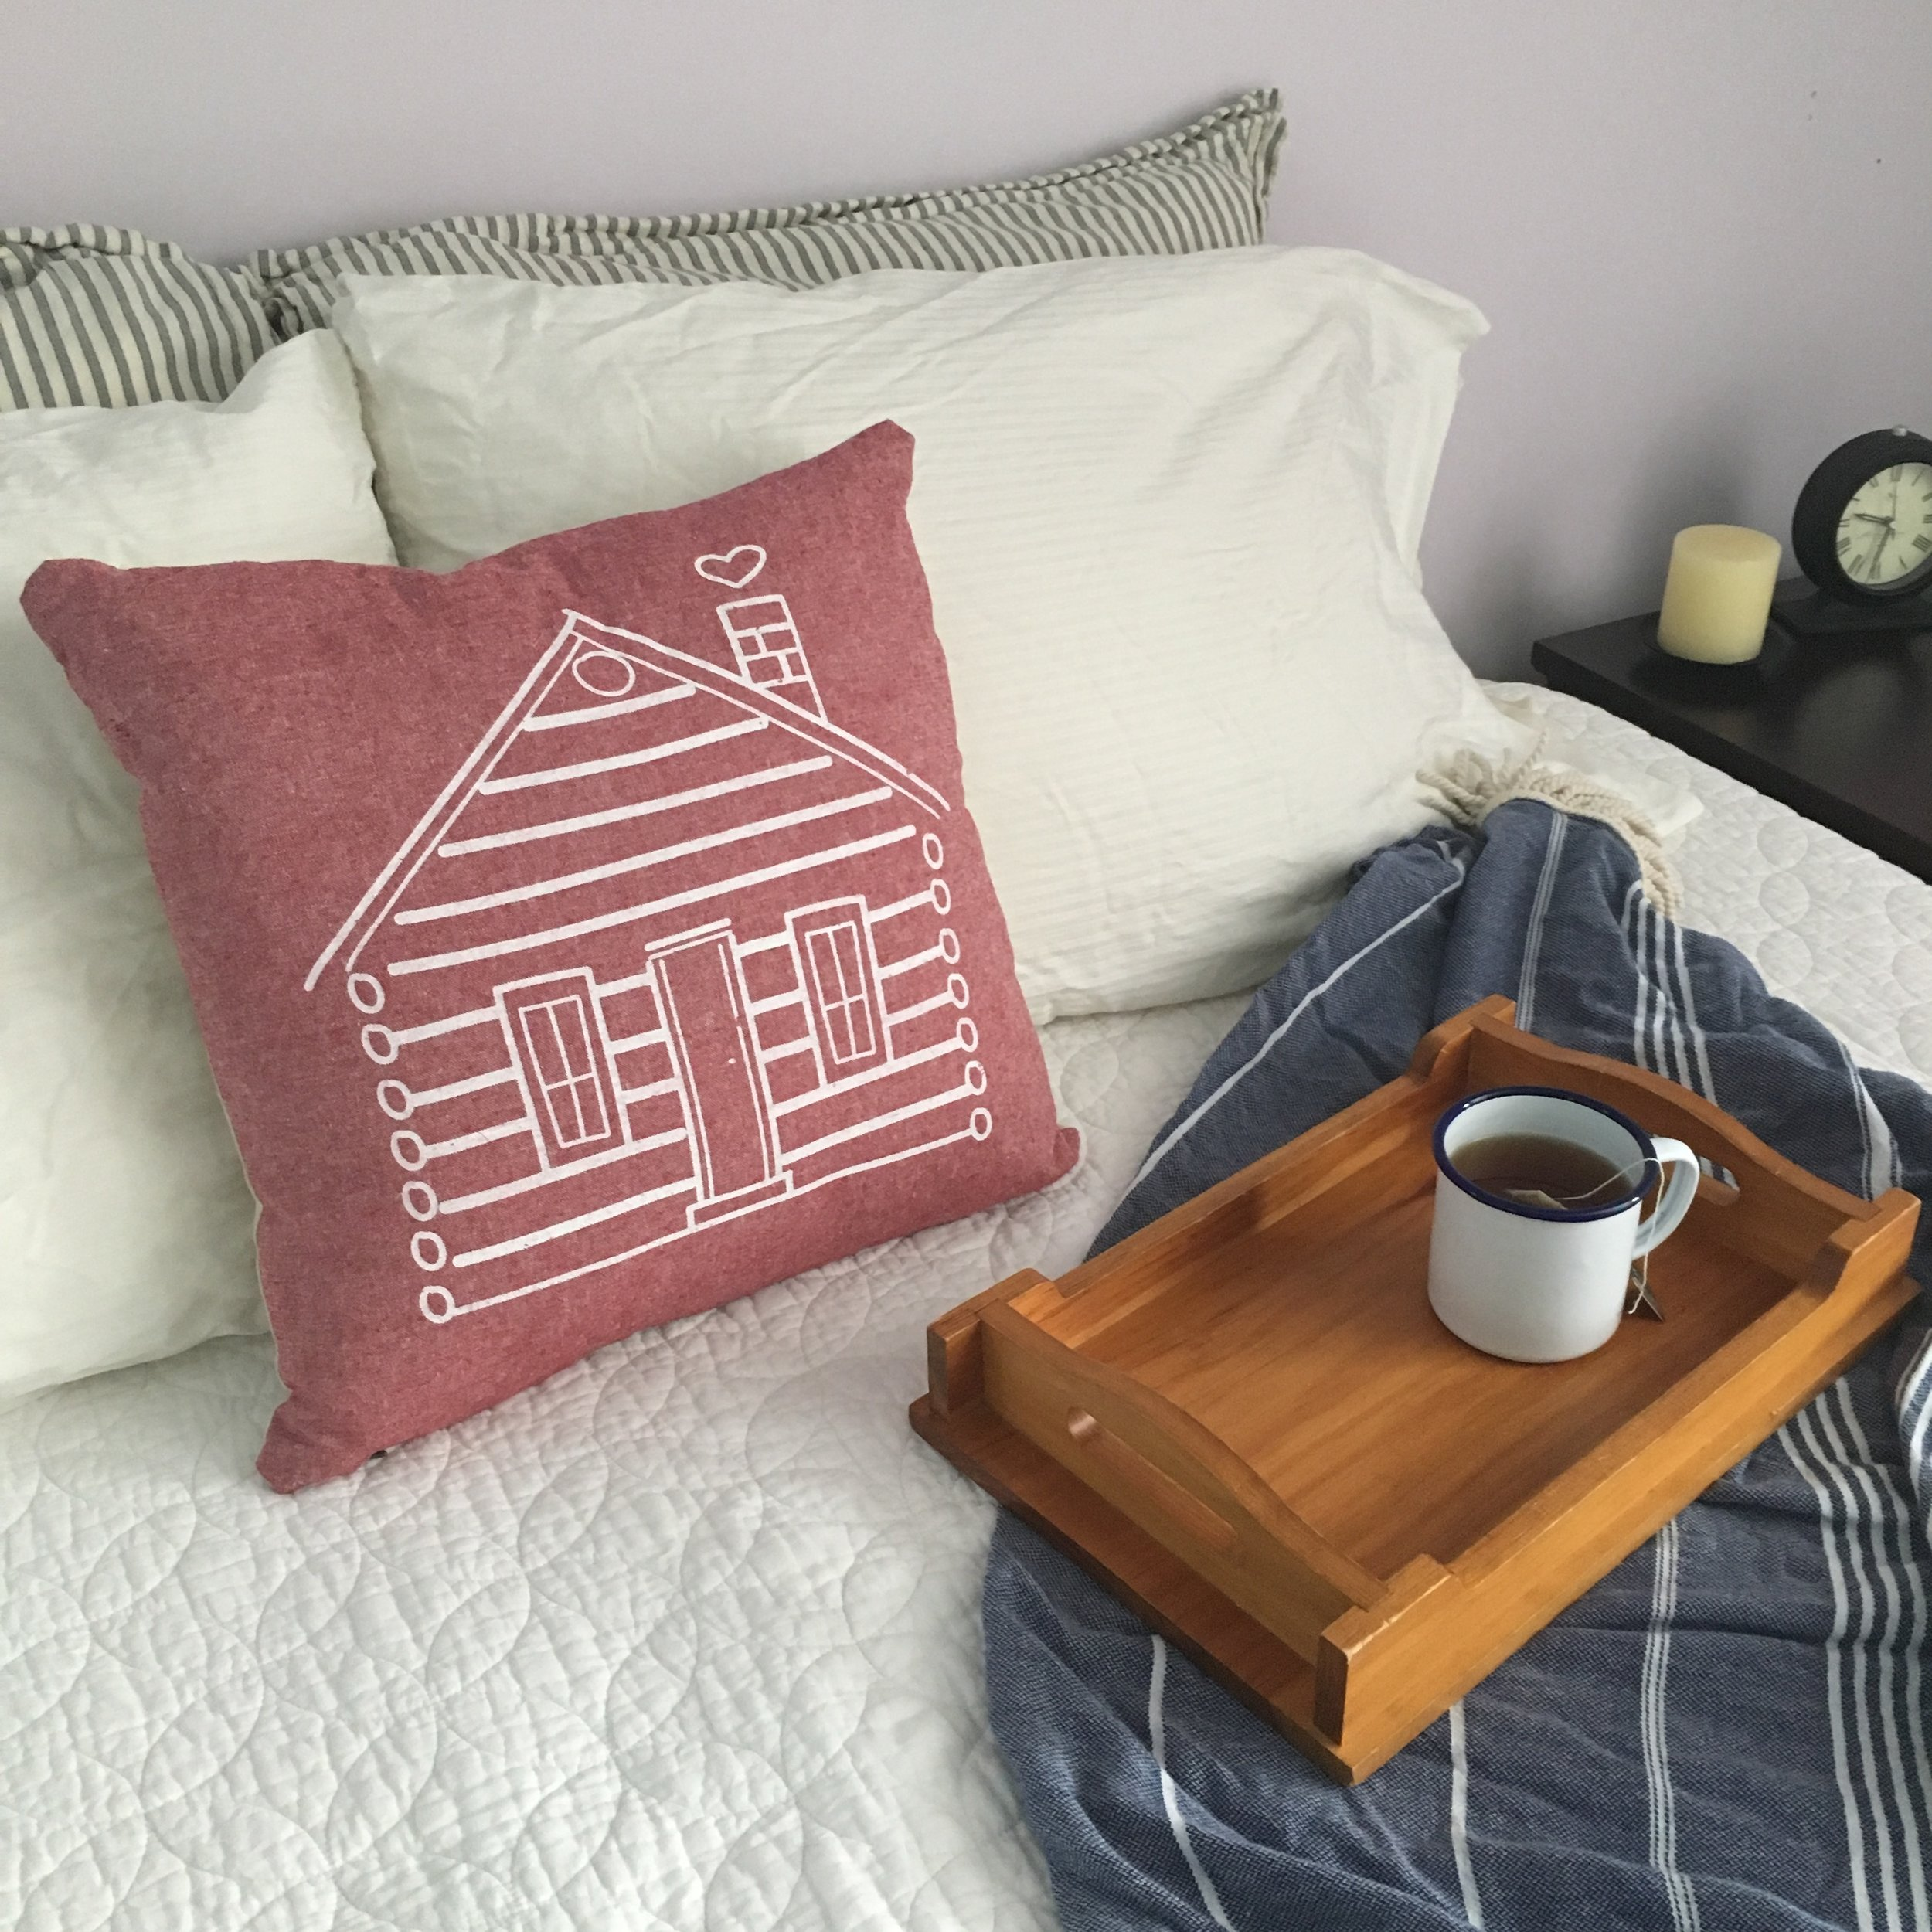 Hills & Trails Pillow is perfect for getting cozy with a cup of tea